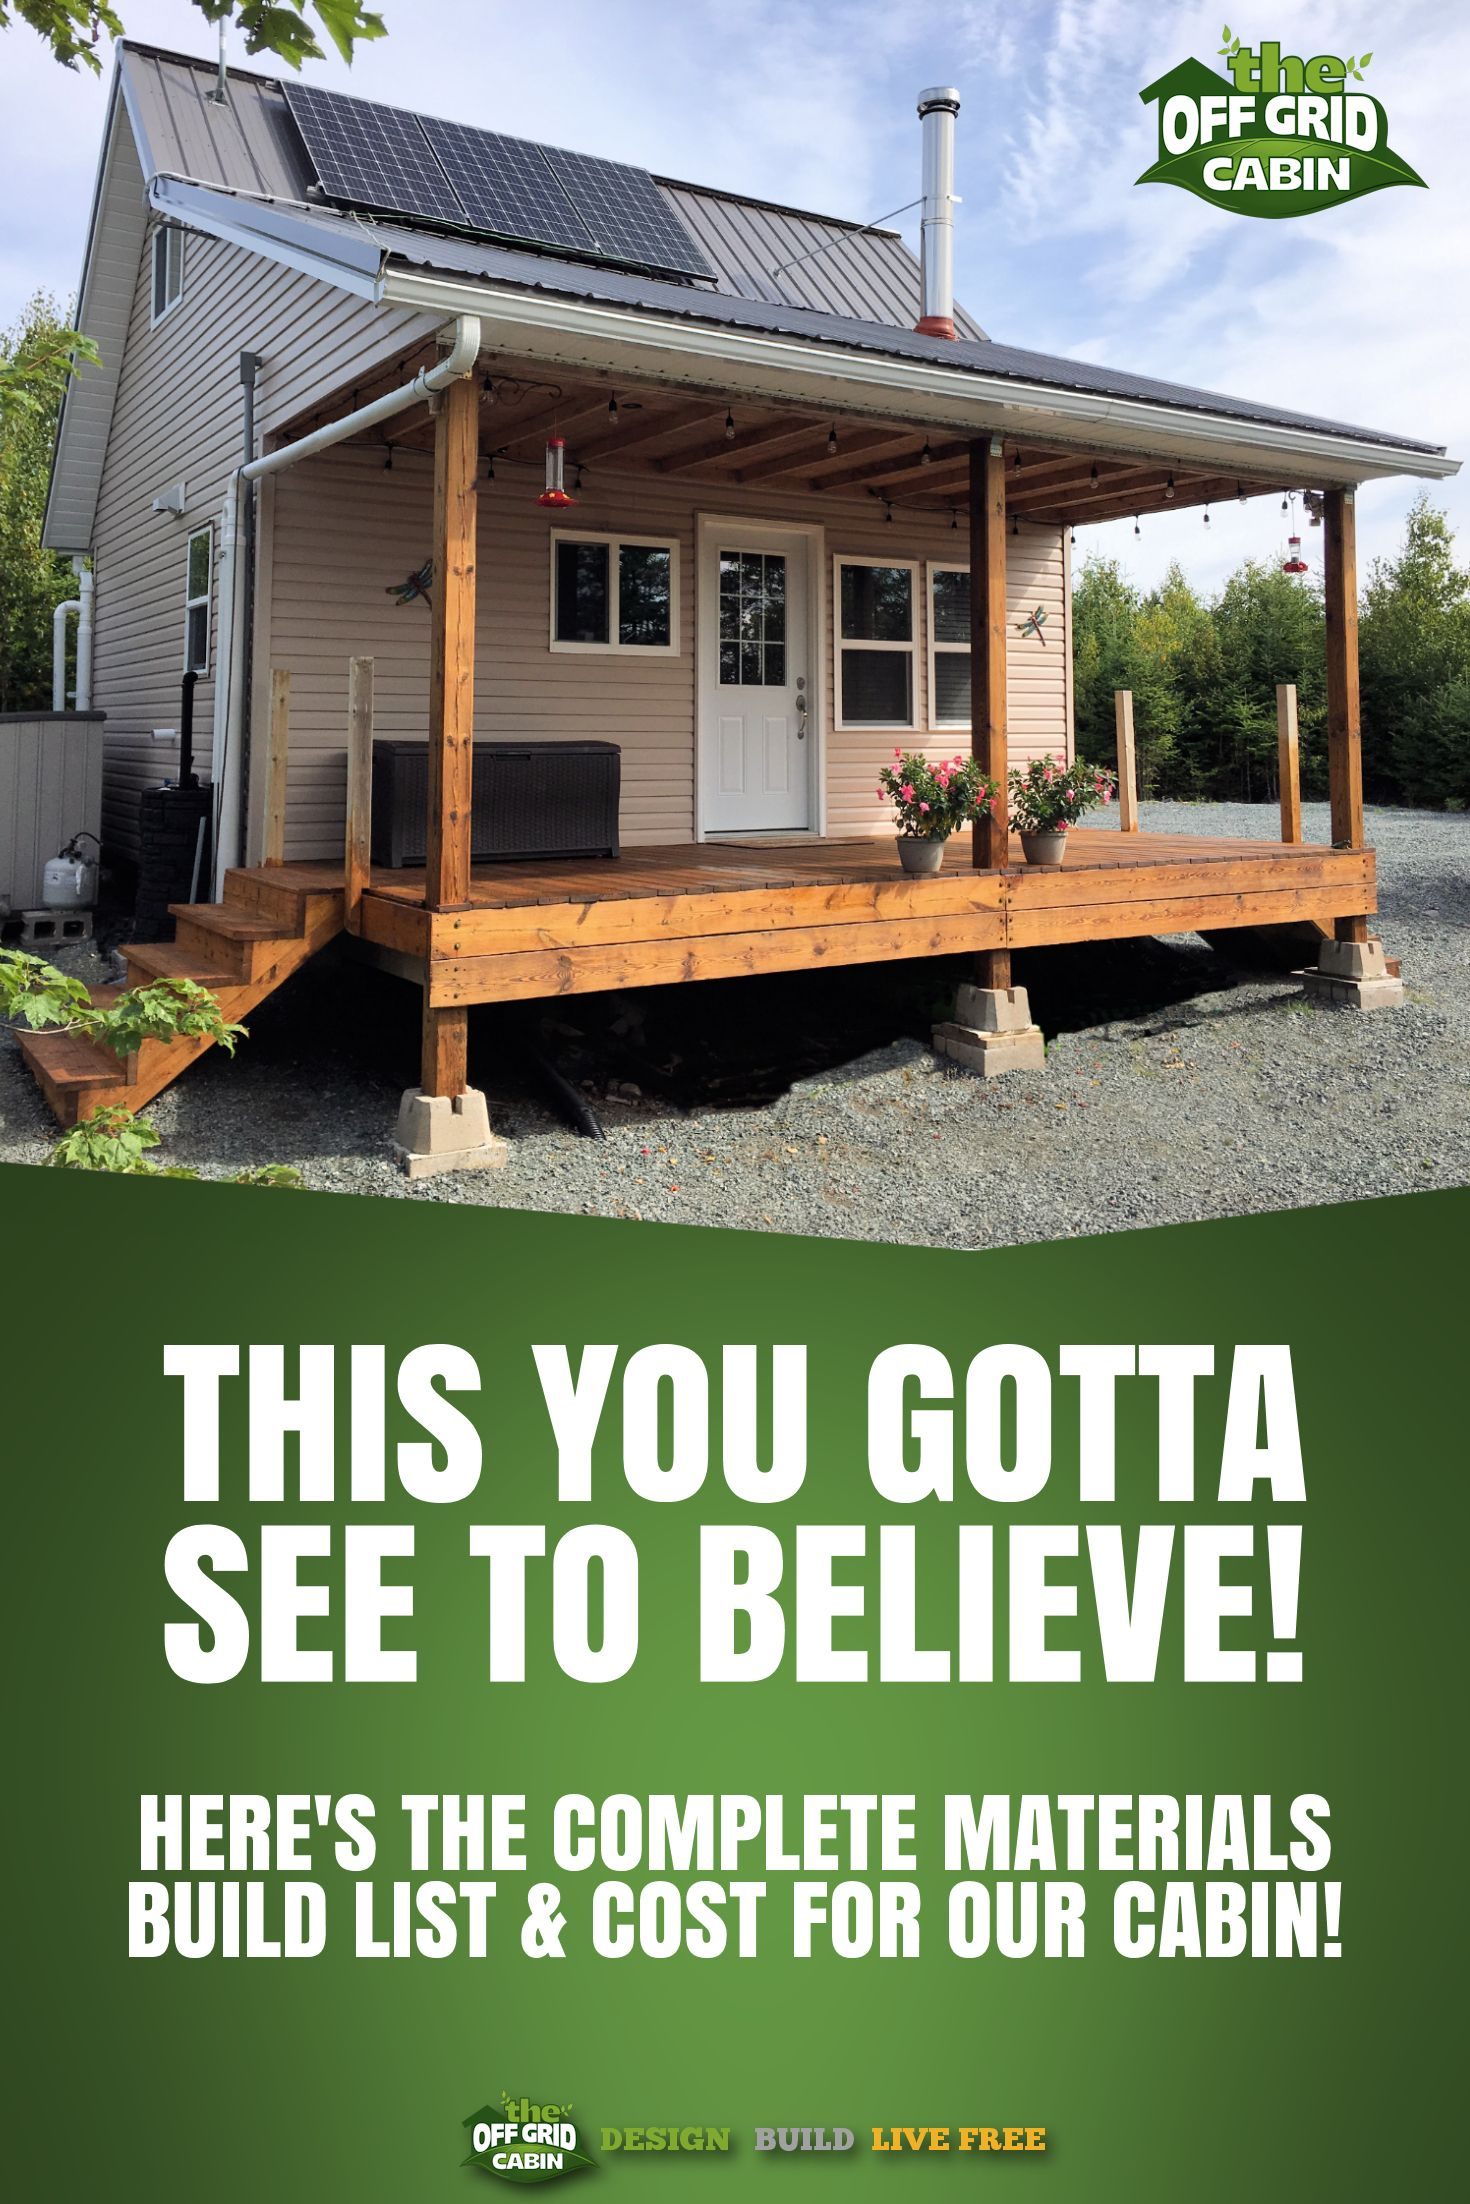 Download Our Complete Off Grid Cabin Materials Build Pdf Off